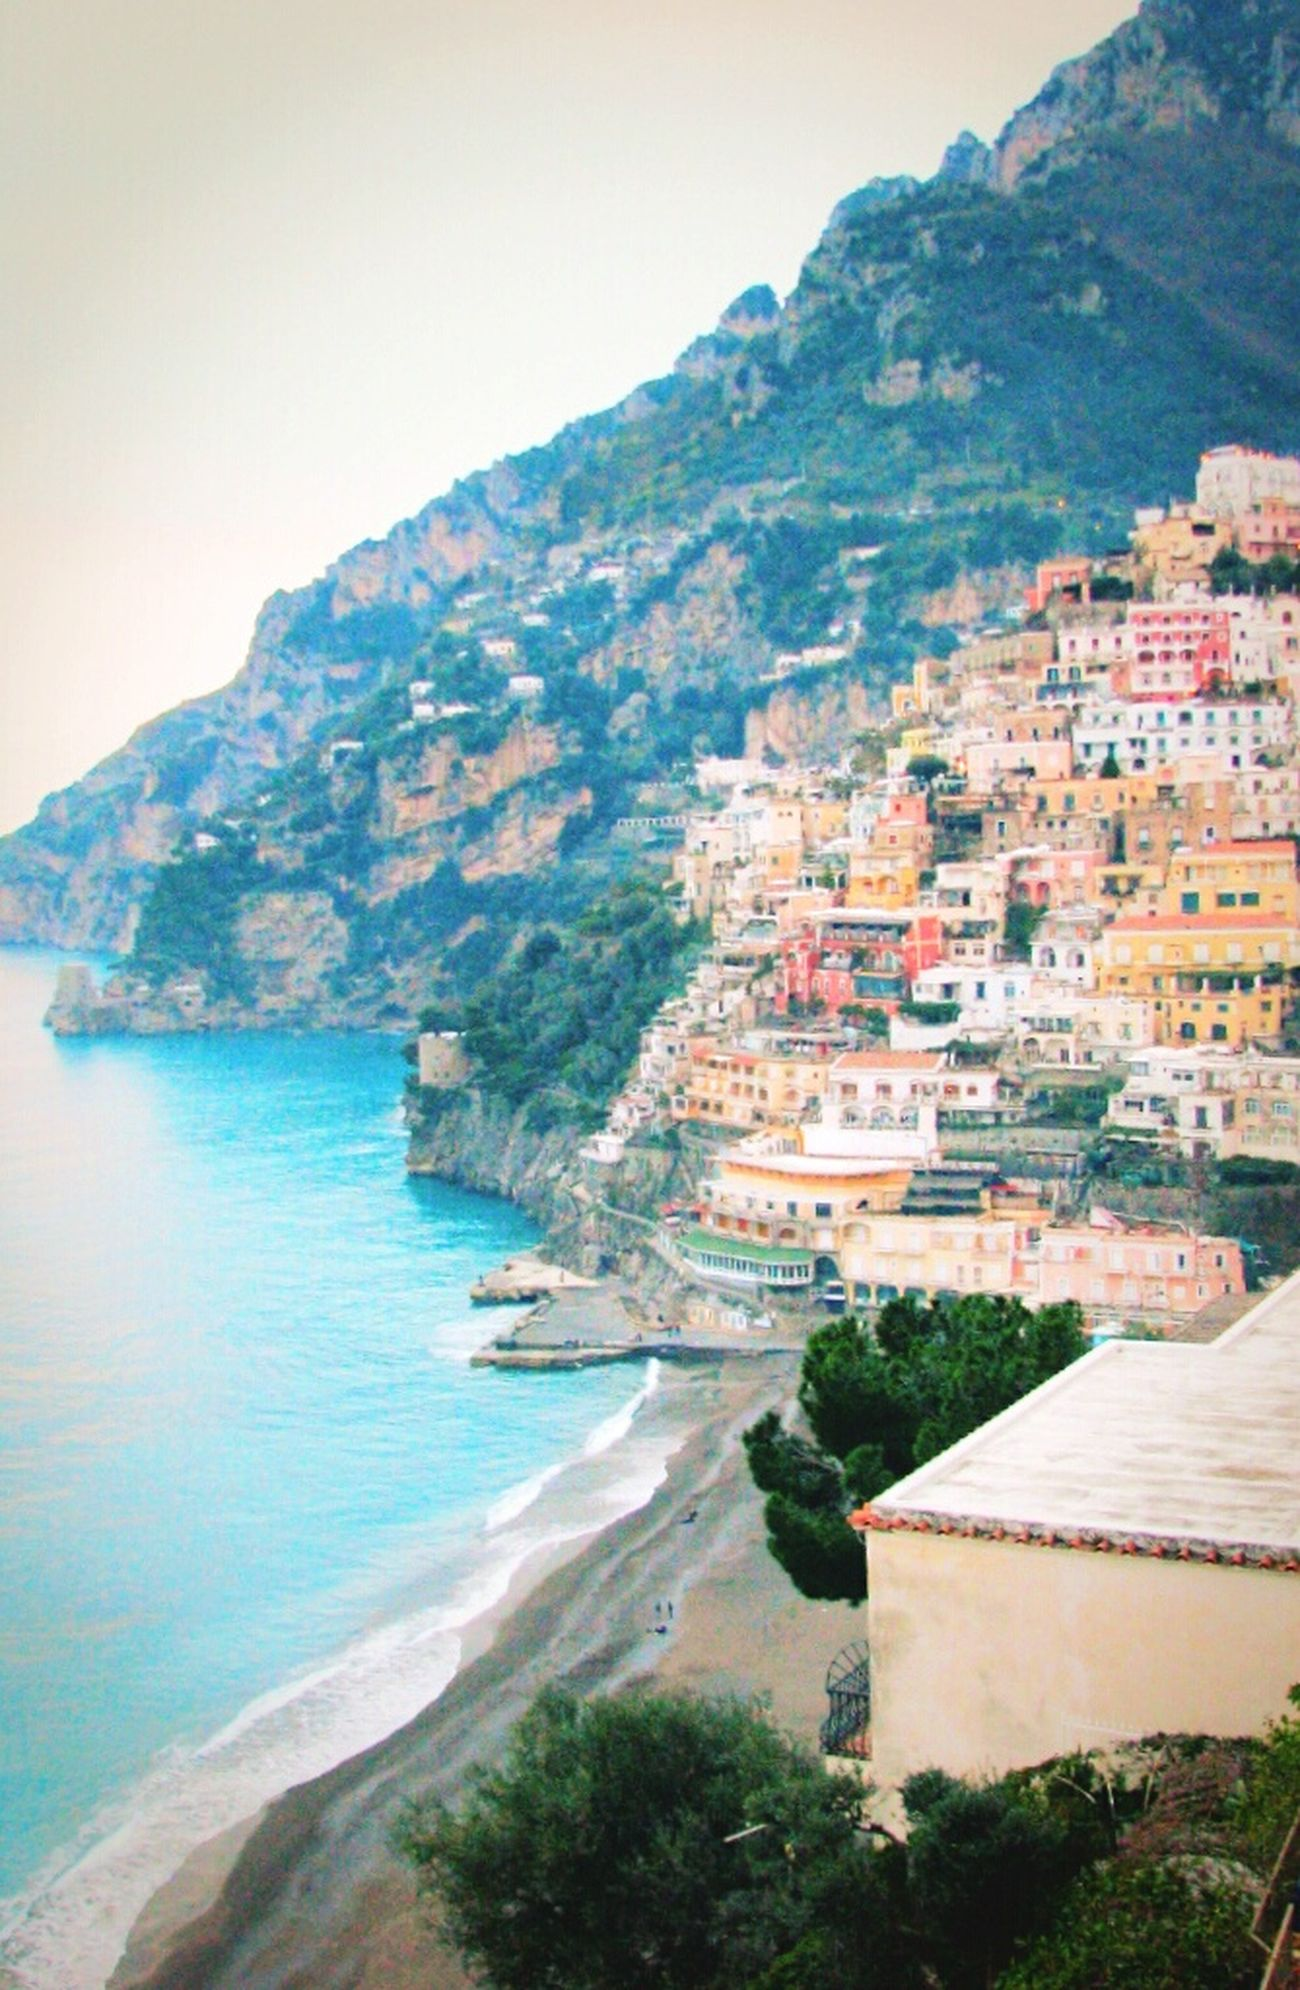 4YearsAgo Travel City Positano Italy Amalfi  Gorgeous Romantic Colorful